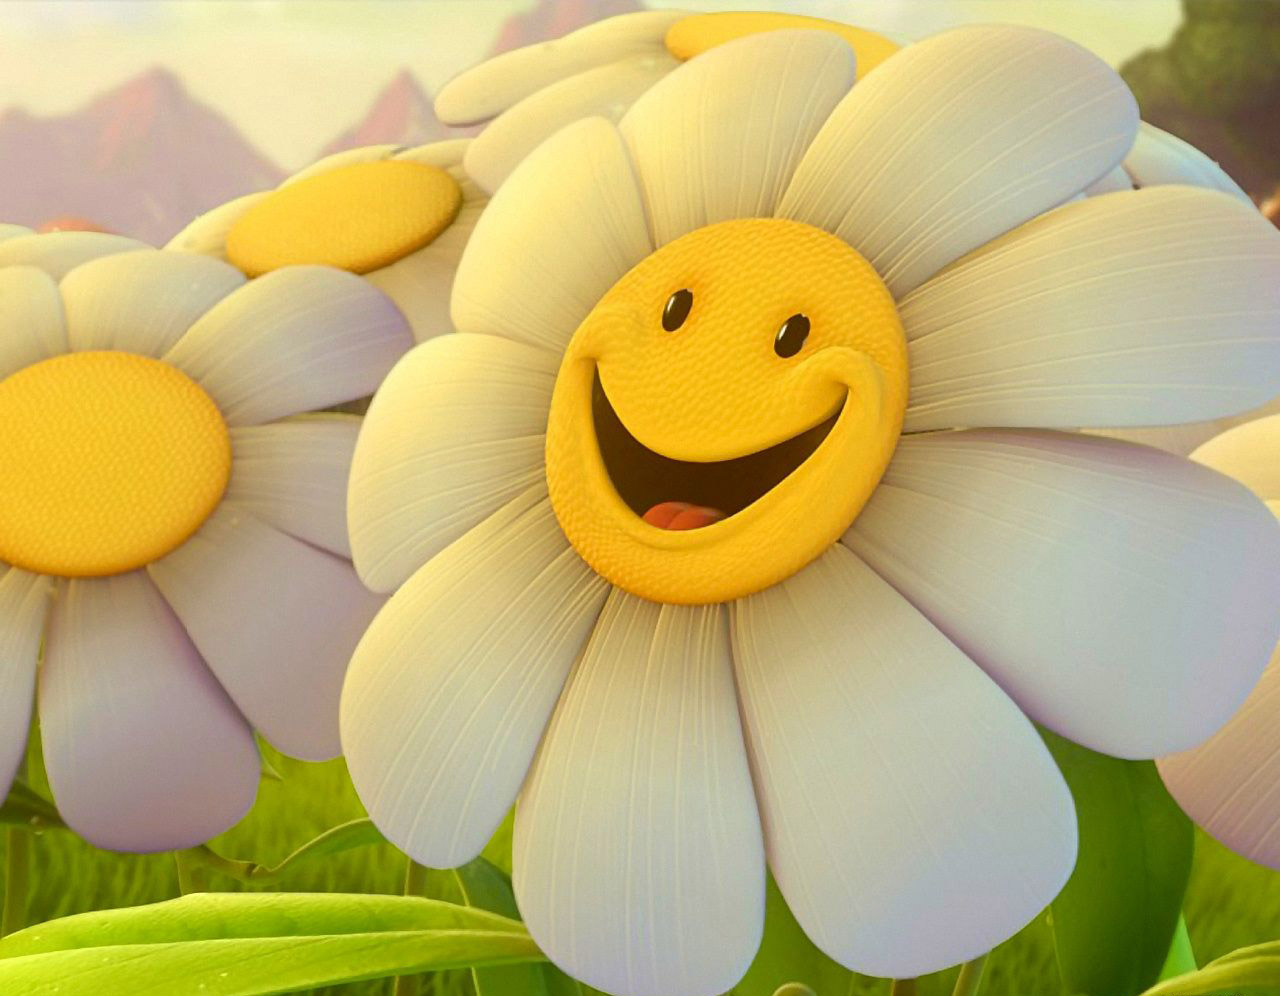 http://2.bp.blogspot.com/-2G04KvY8plk/Tm1KgxViSTI/AAAAAAAAAZs/IHvINTjVy6k/s1600/Smiley_Flower_Happy%2521_wallpaper.jpg